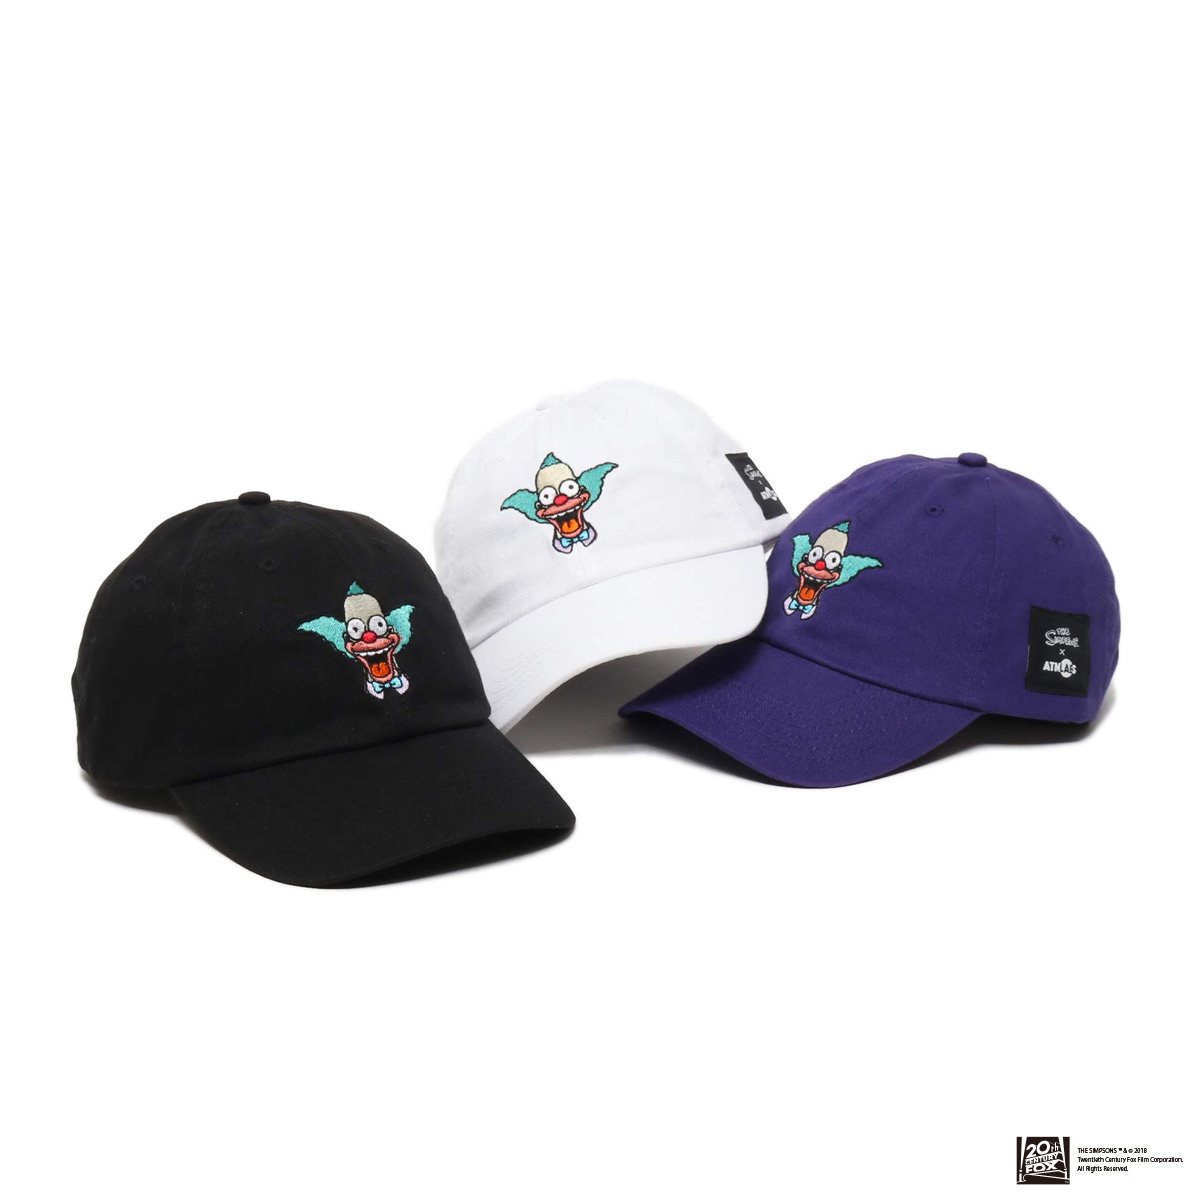 THE SIMPSONS x ATMOS LAB KRUSTY EMBROIDERY 6 PANEL CAP